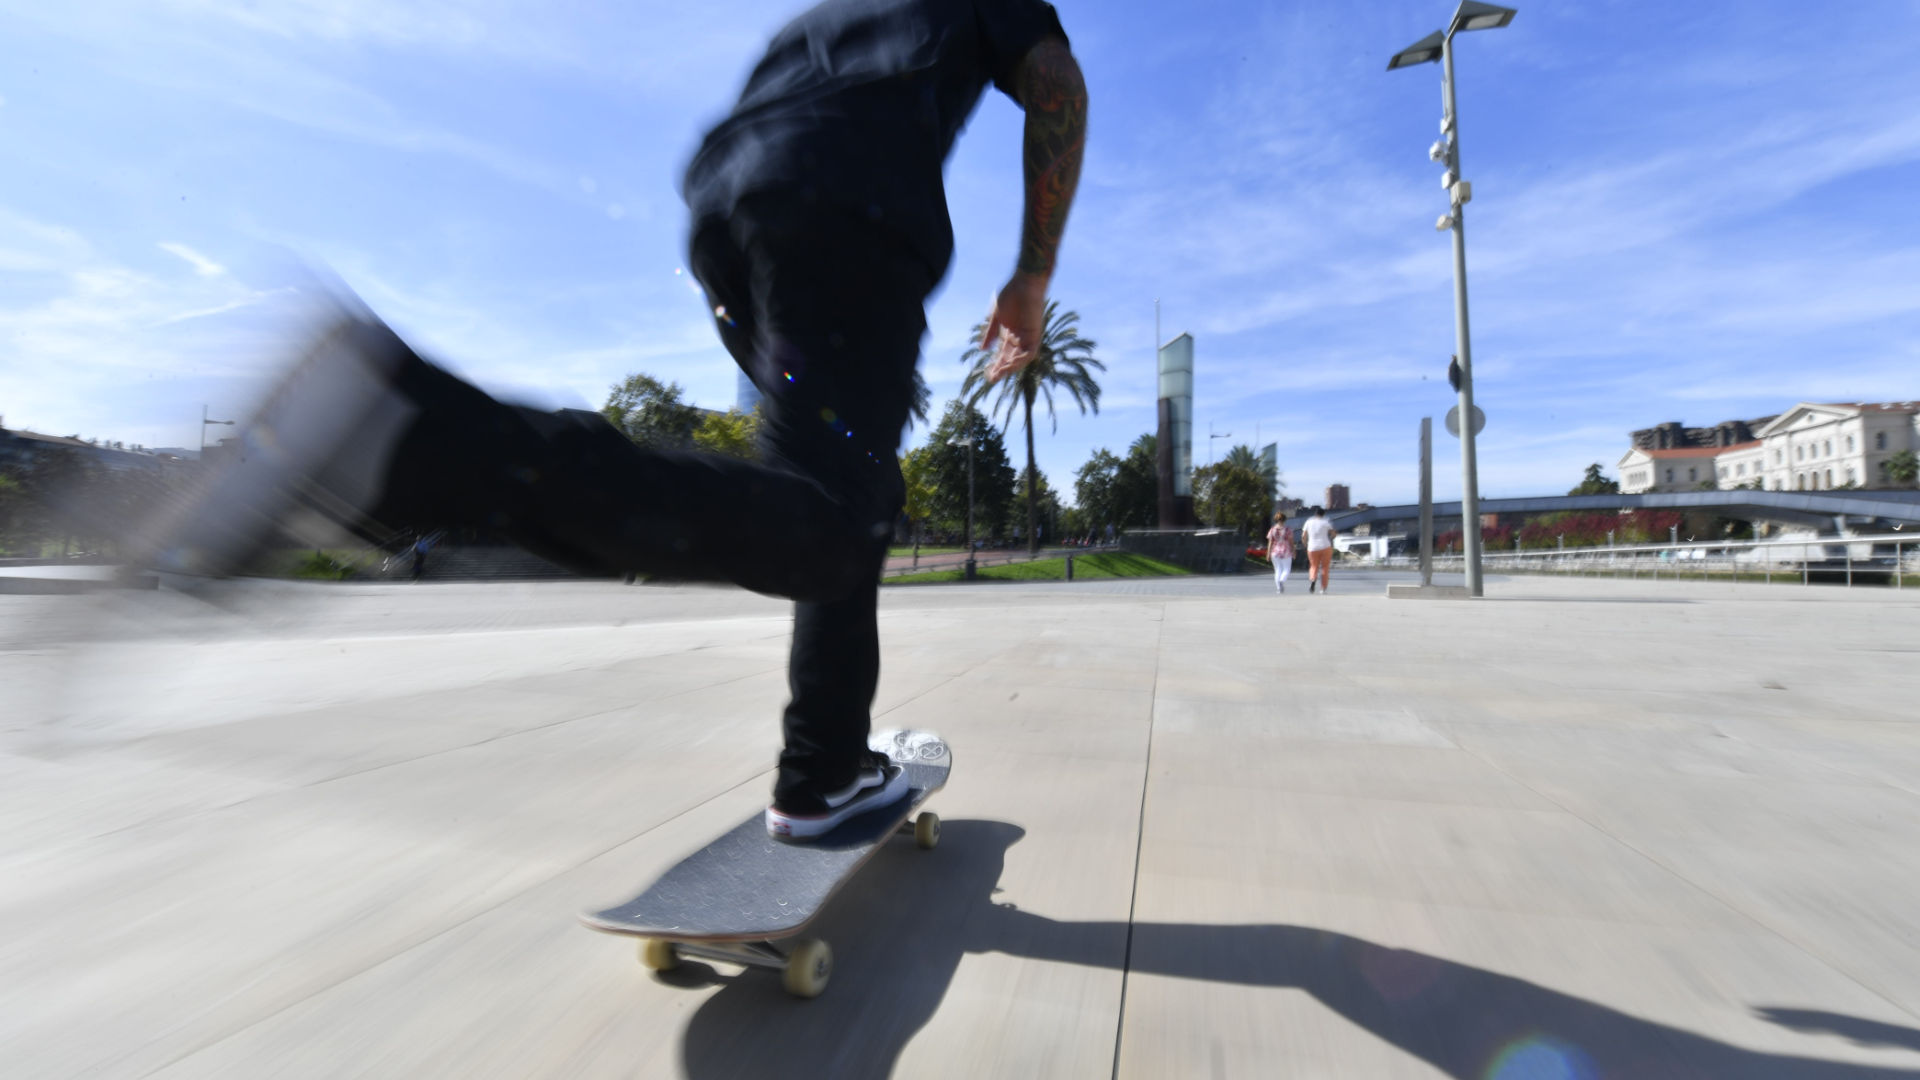 Riding a skateboard in Spain with a foot securely on the board